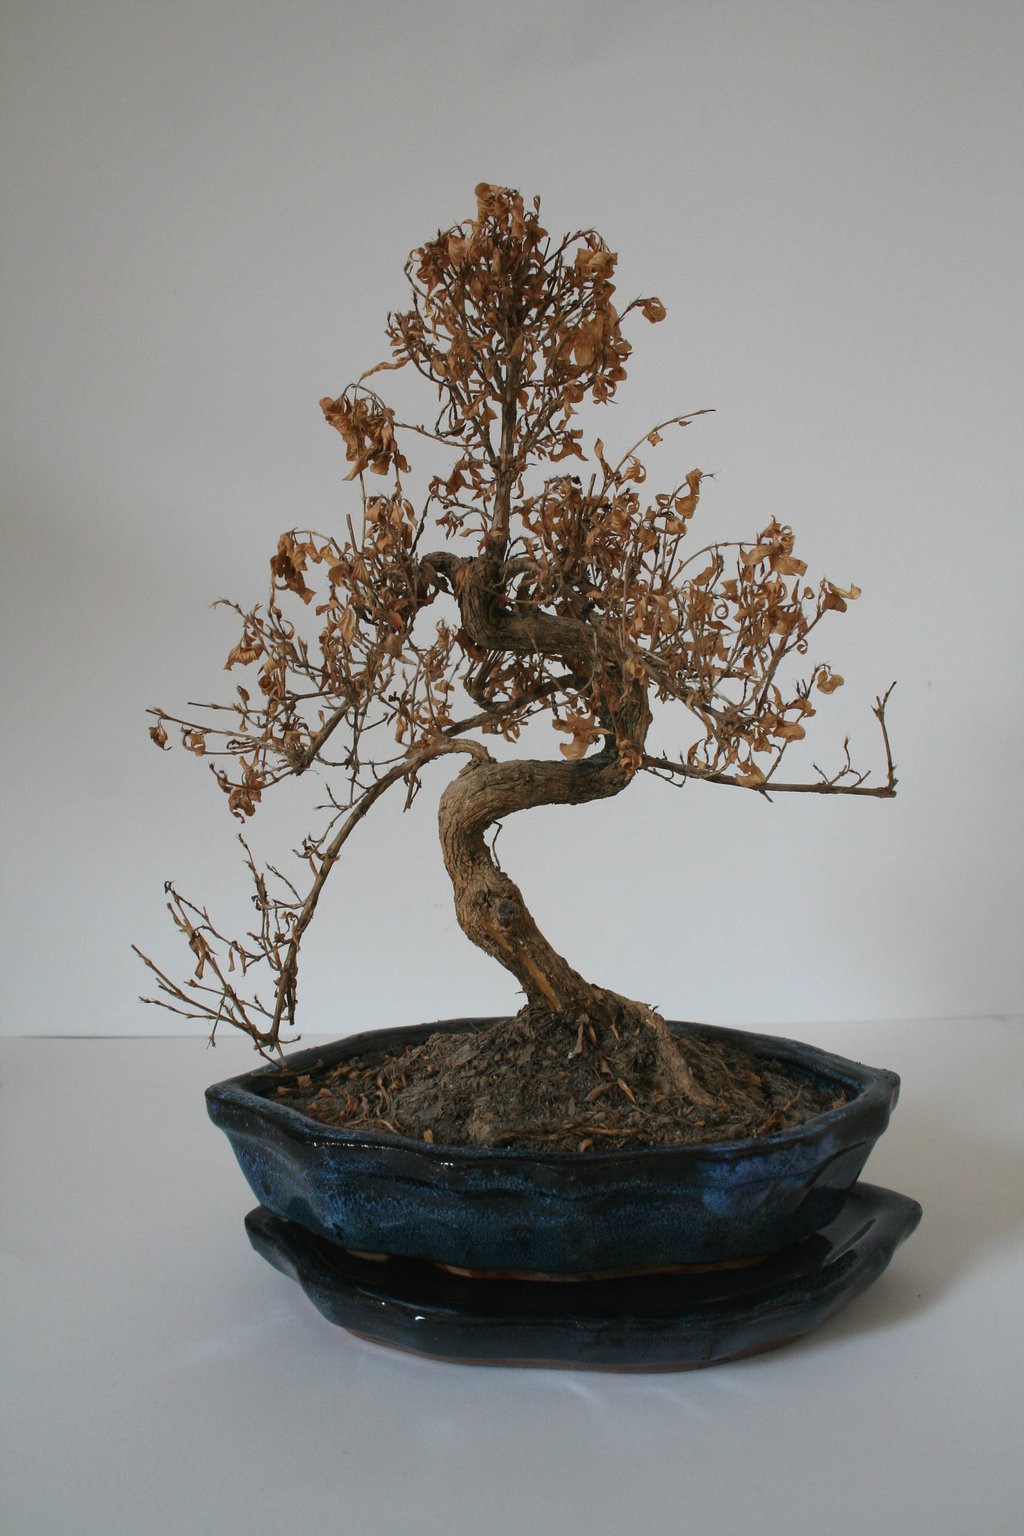 There S No Reason To Call 9 1 1 When Your Bonsai Needs First Aid Bonsai Outlet